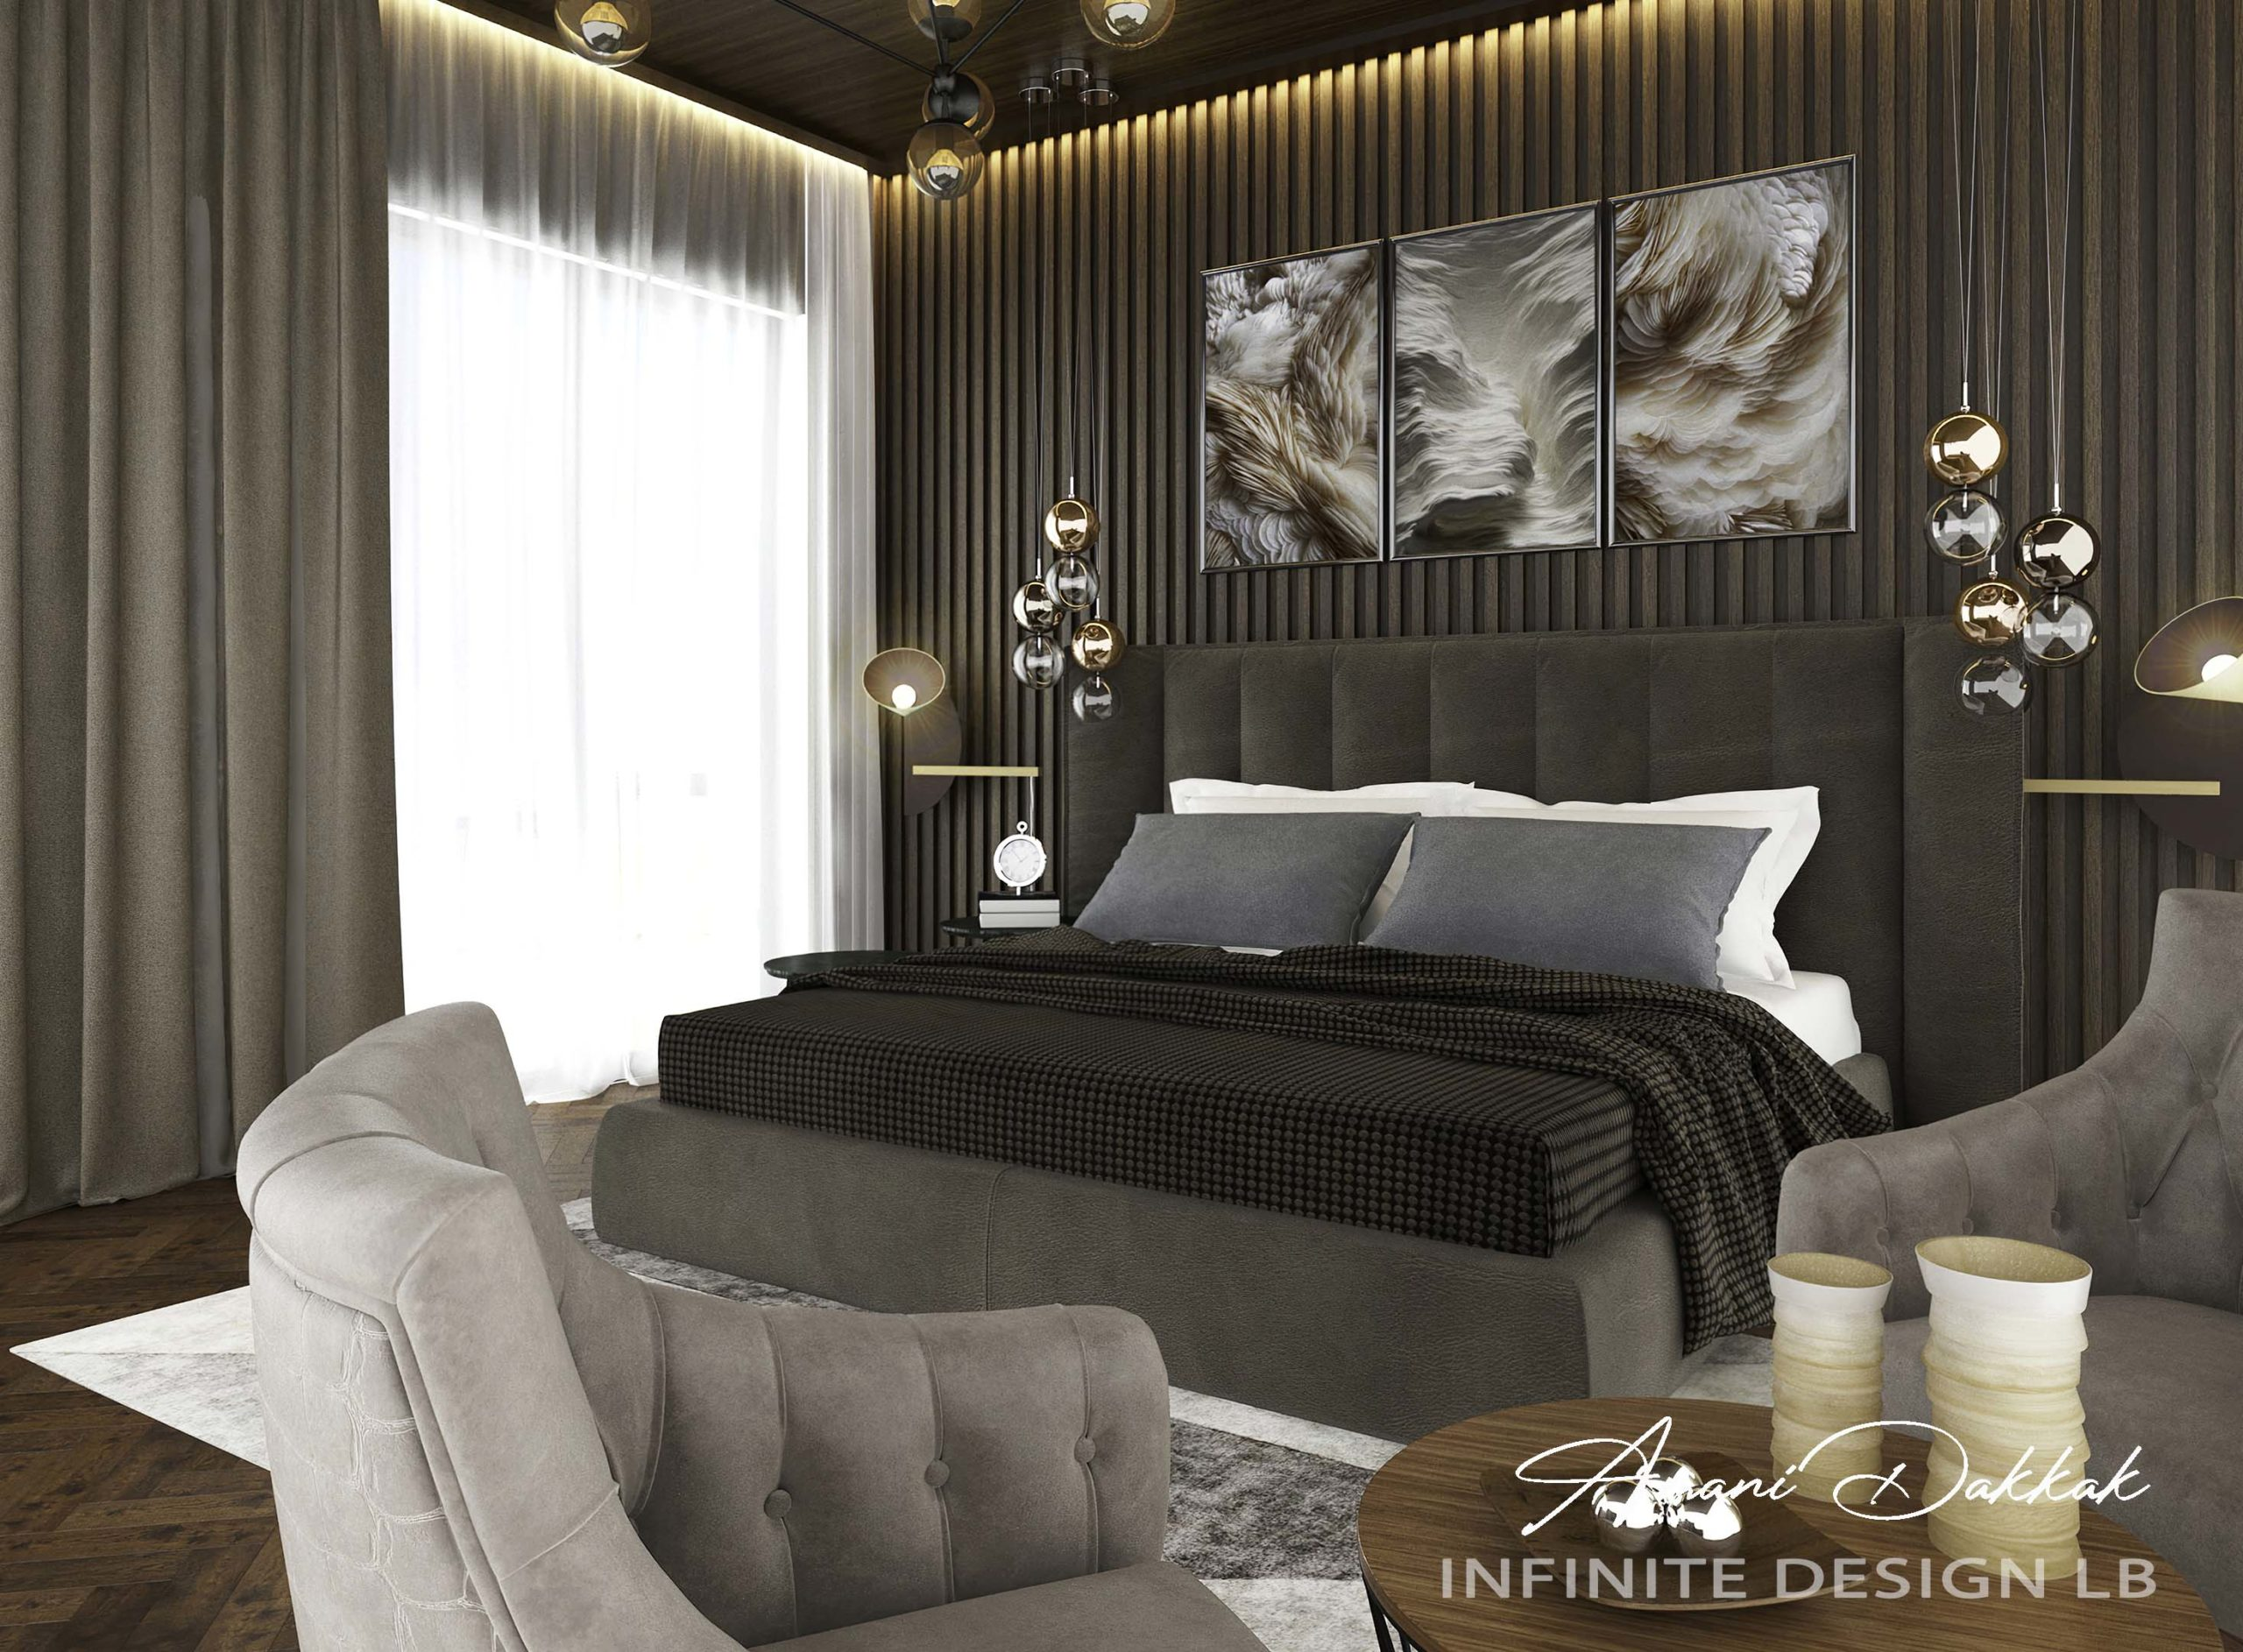 Luxury Hotel Bedroom Decoration Design | By Amani Dakkak